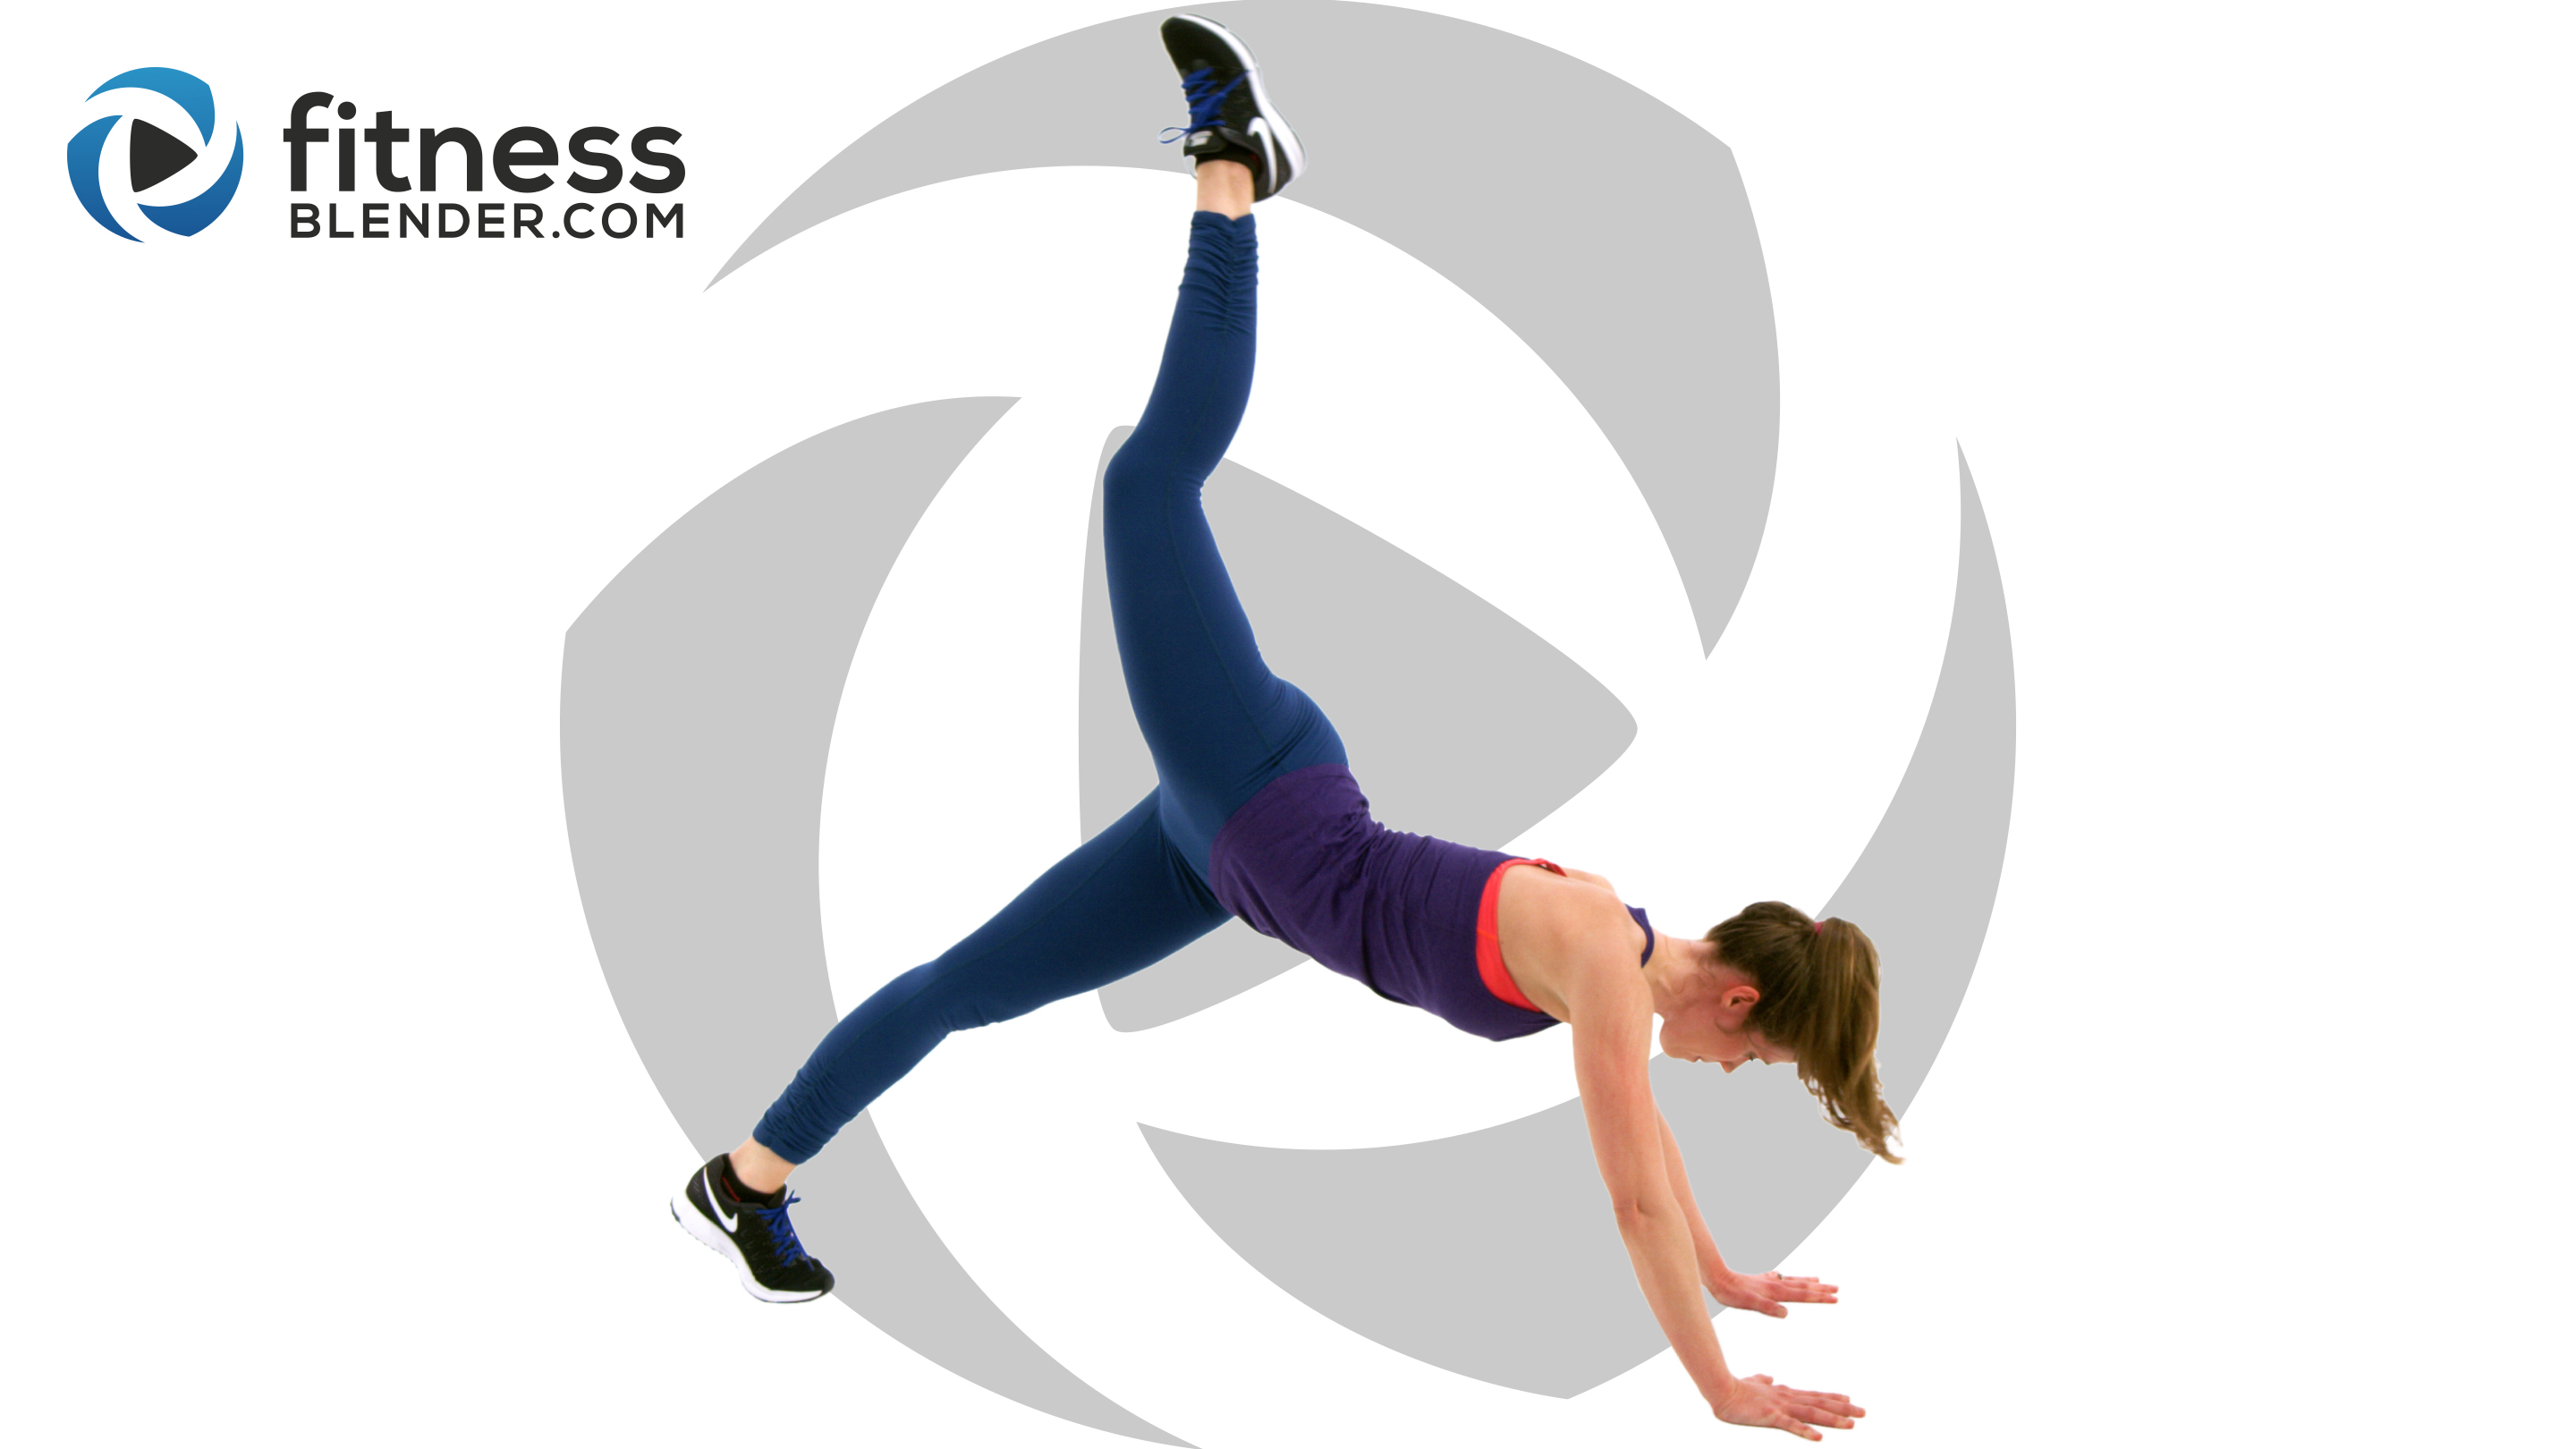 No Equipment And Thigh Workout Fat Burning Cardio Intervals Fitness Blender